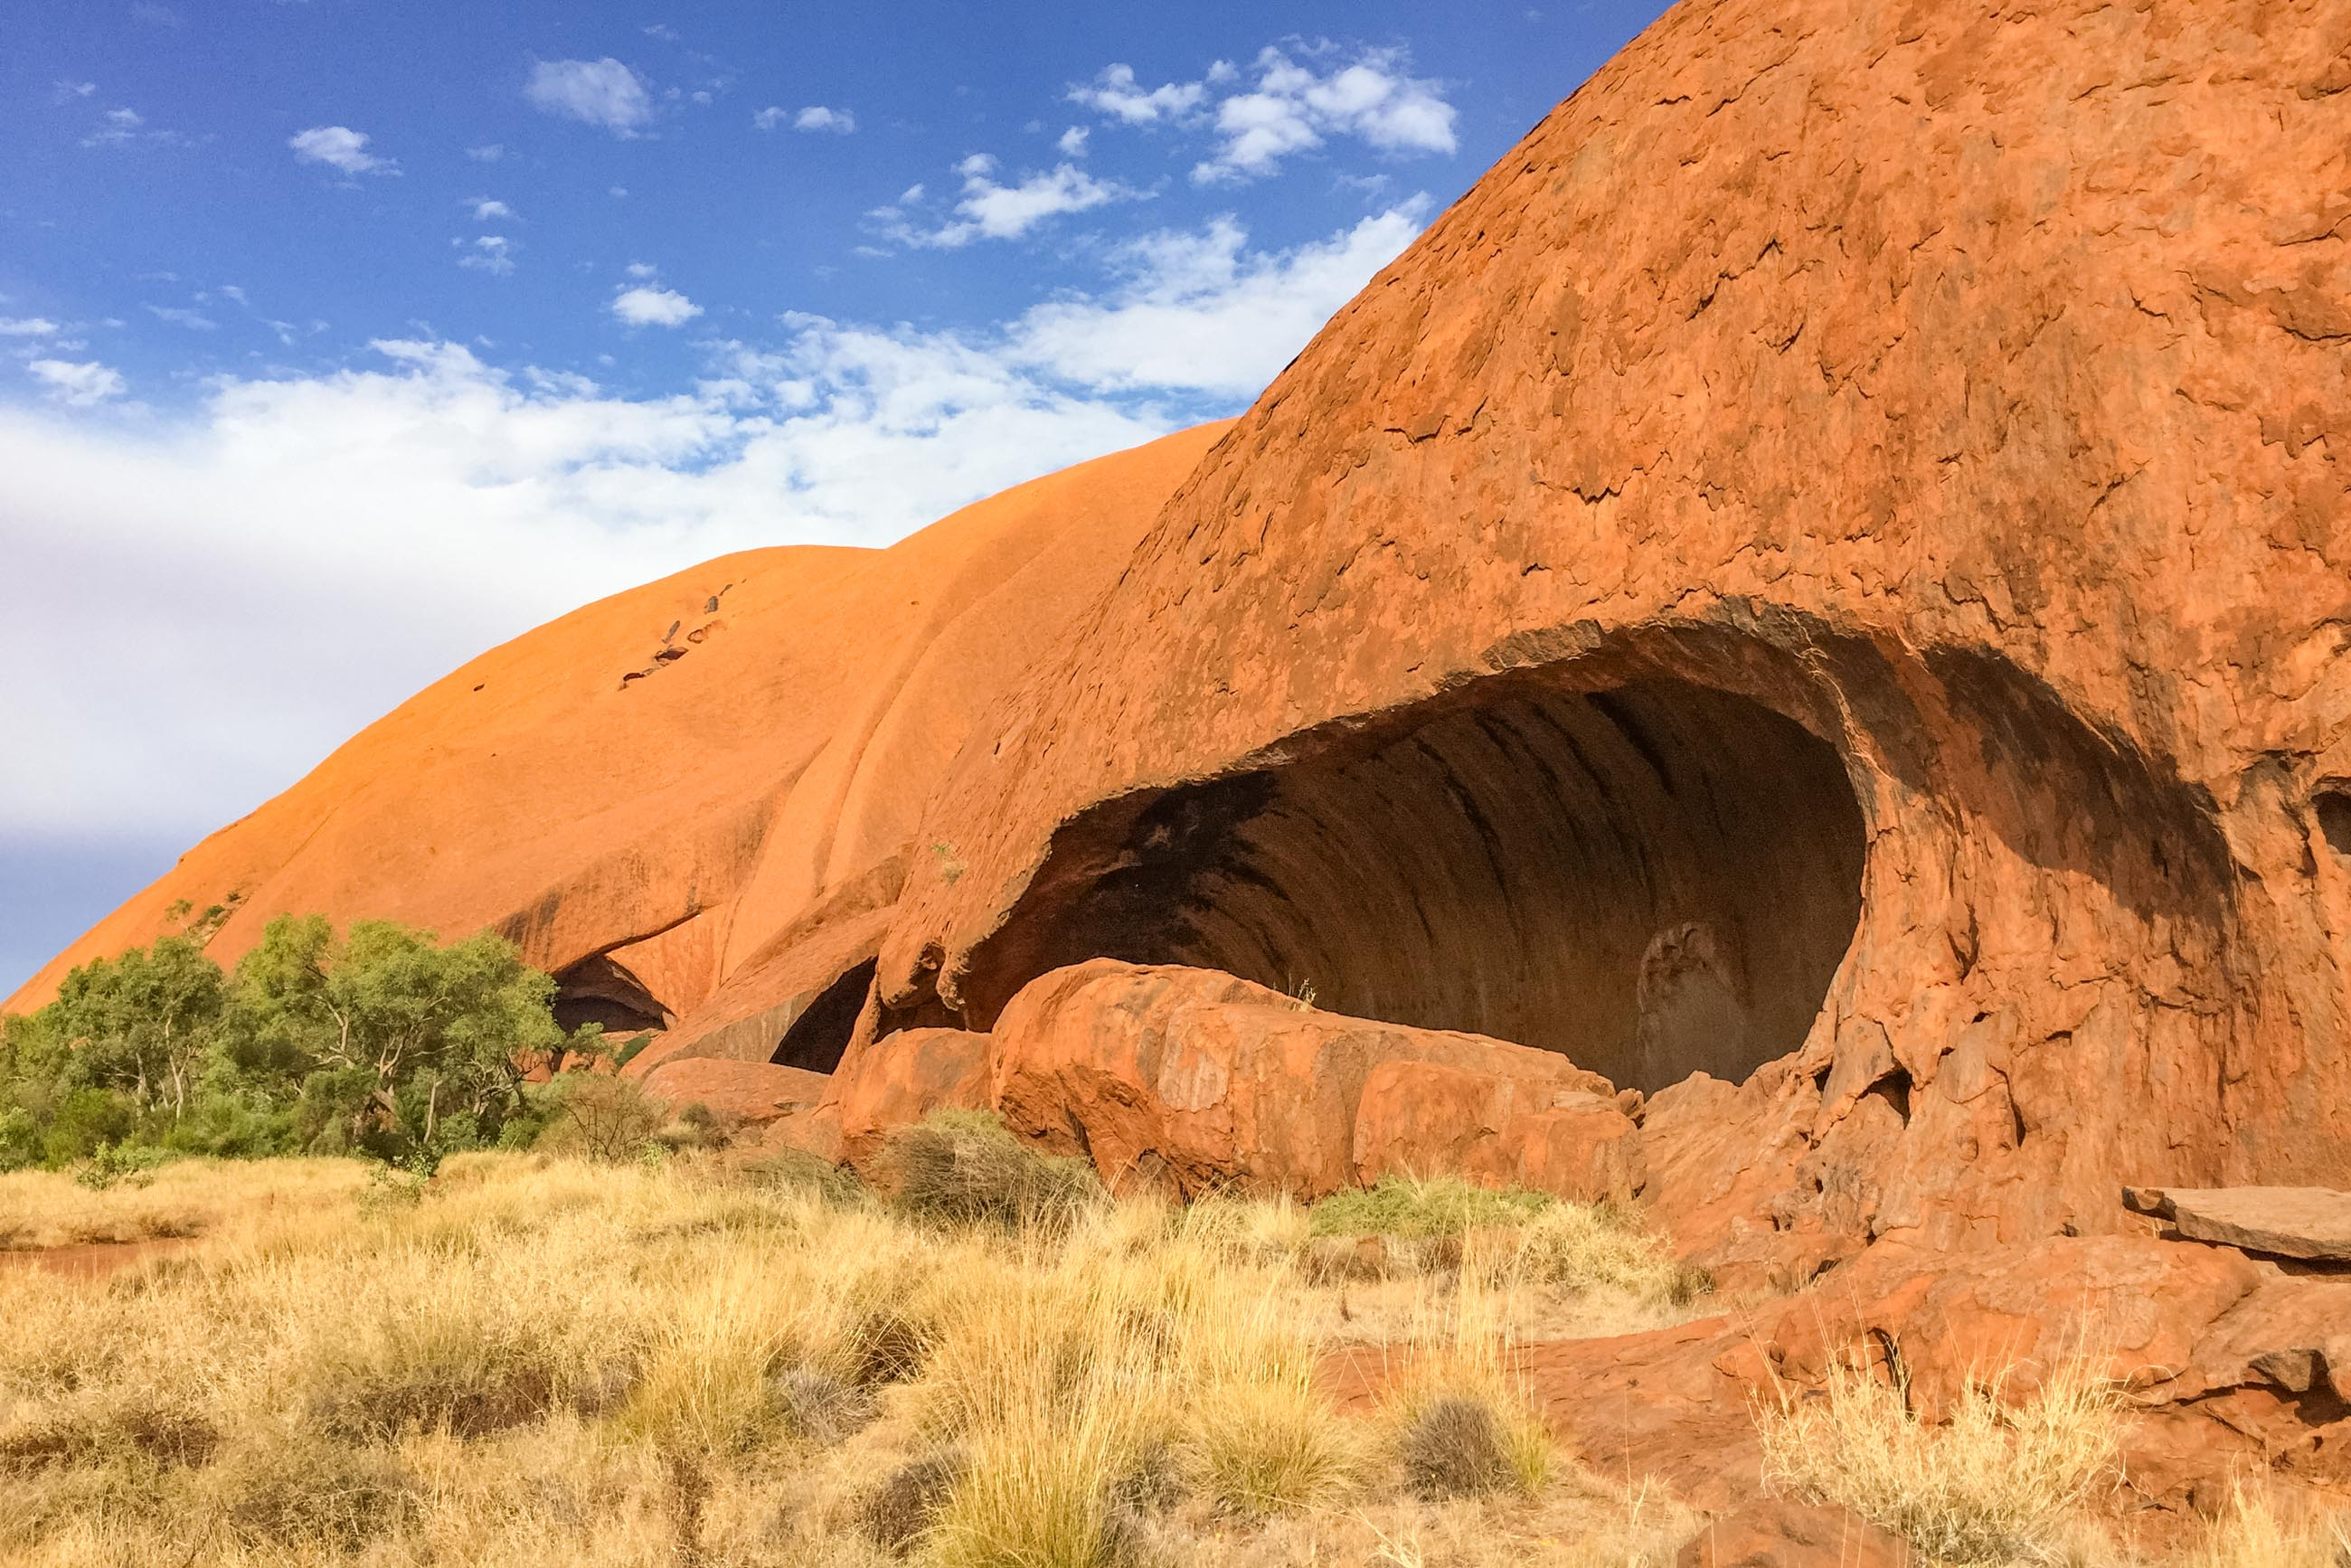 https://bubo.sk/uploads/galleries/5028/veron_hulikova_australia_severne_teritorium_uluru11.jpg